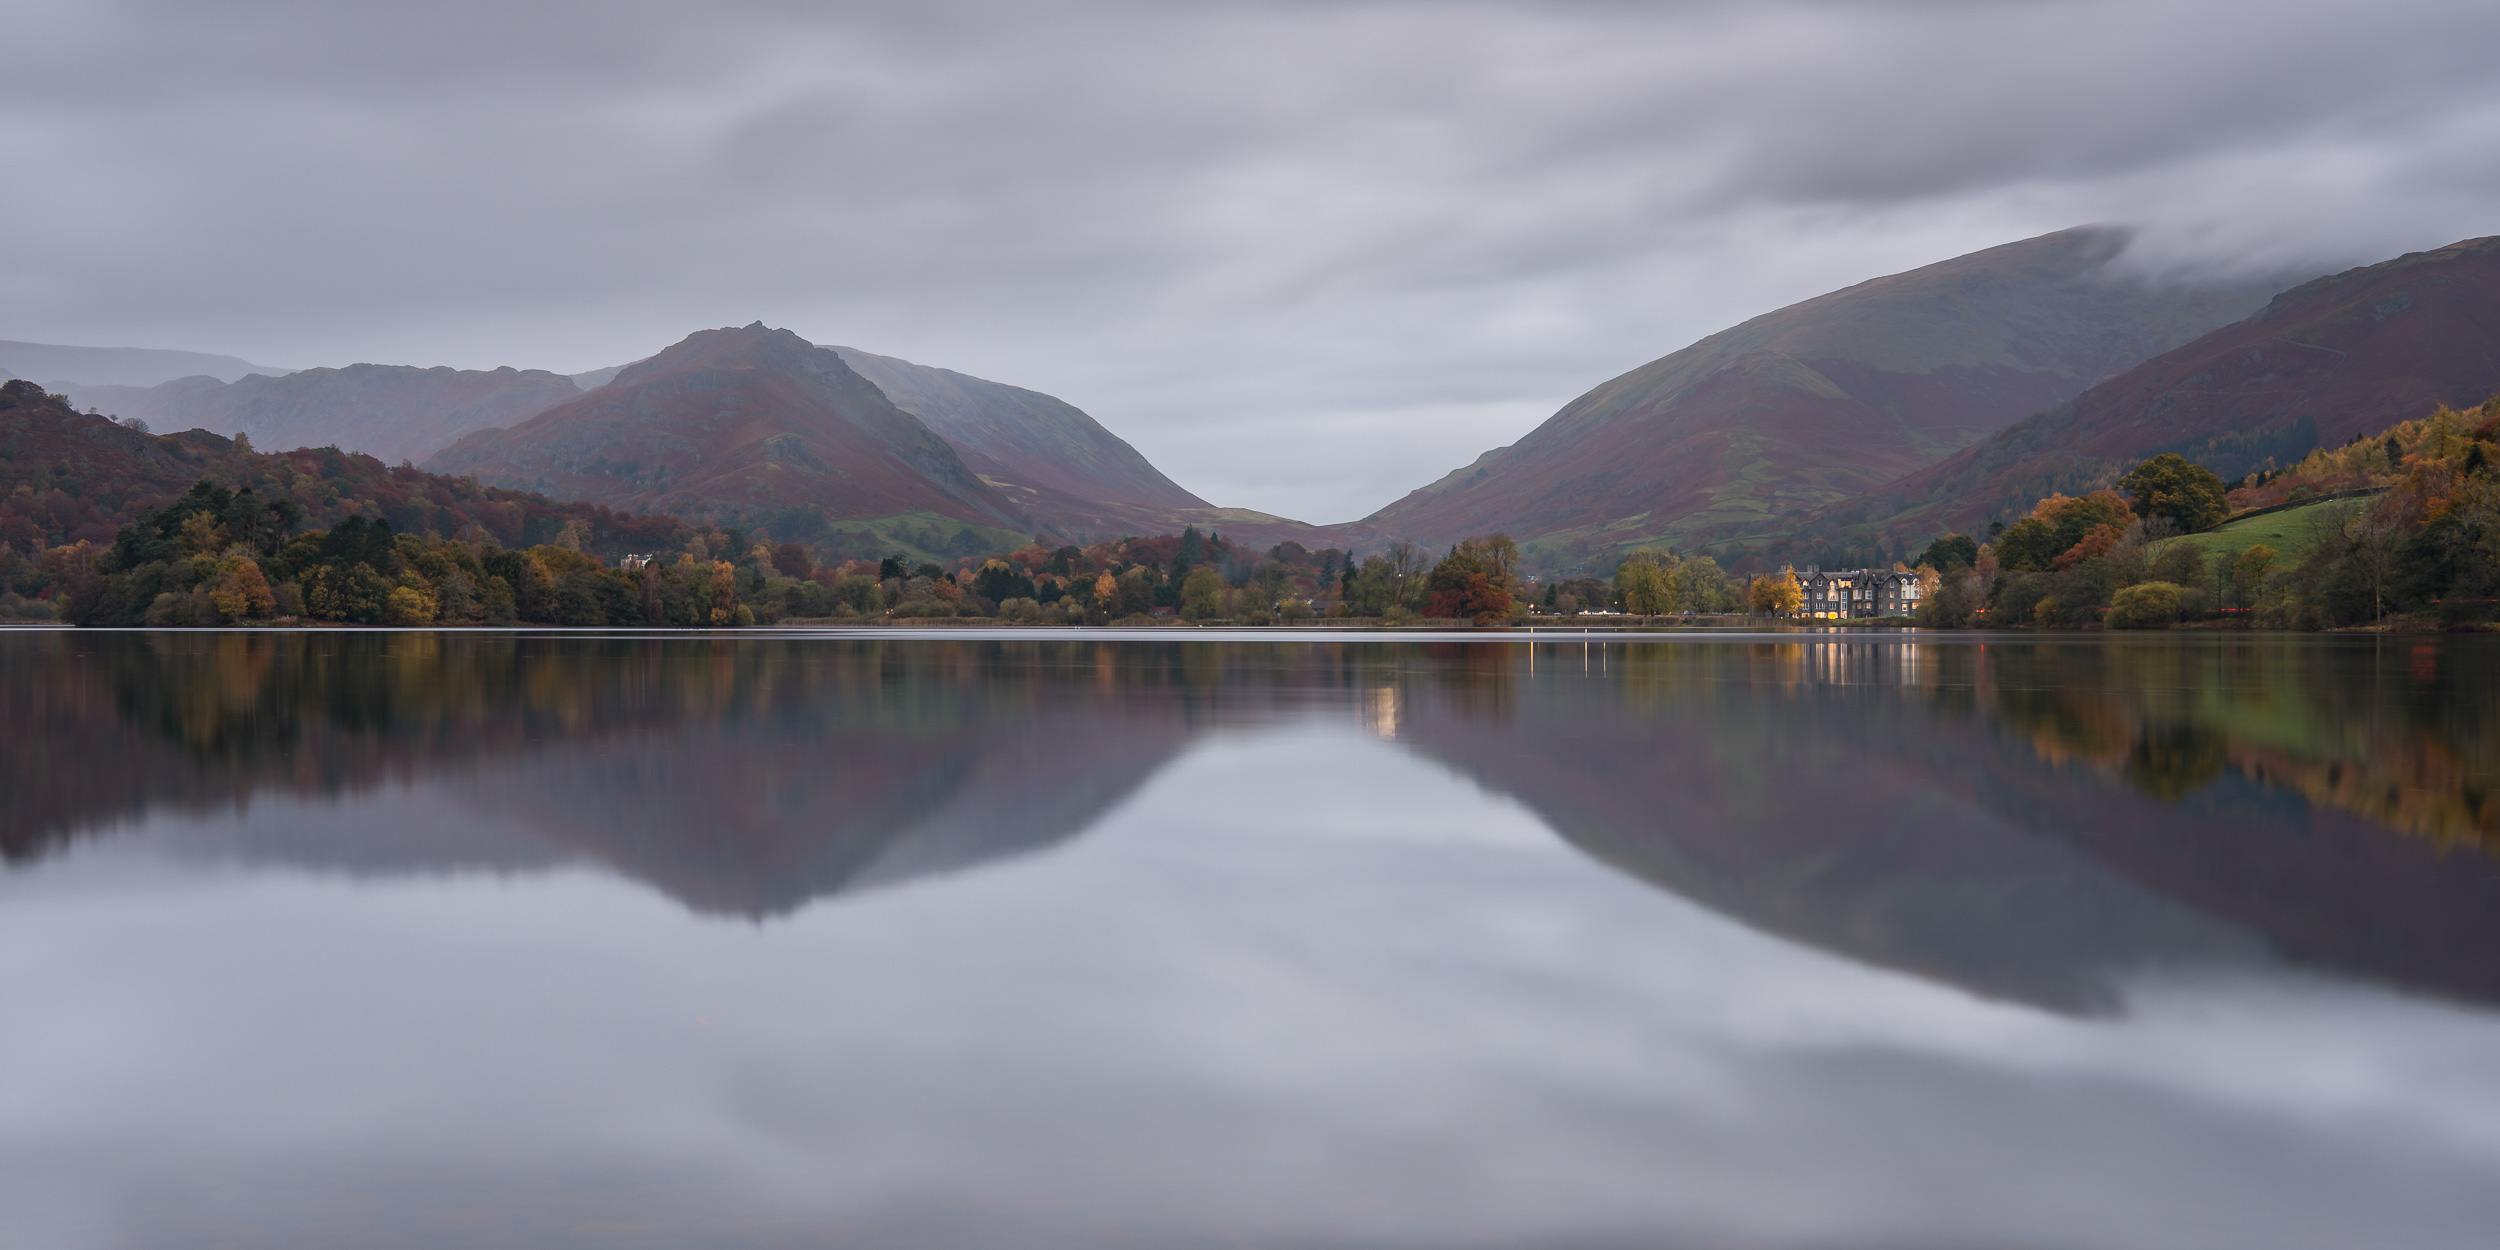 Lovely reflections, just a shame about the light. This image is a 2:1 crop from the original frame.